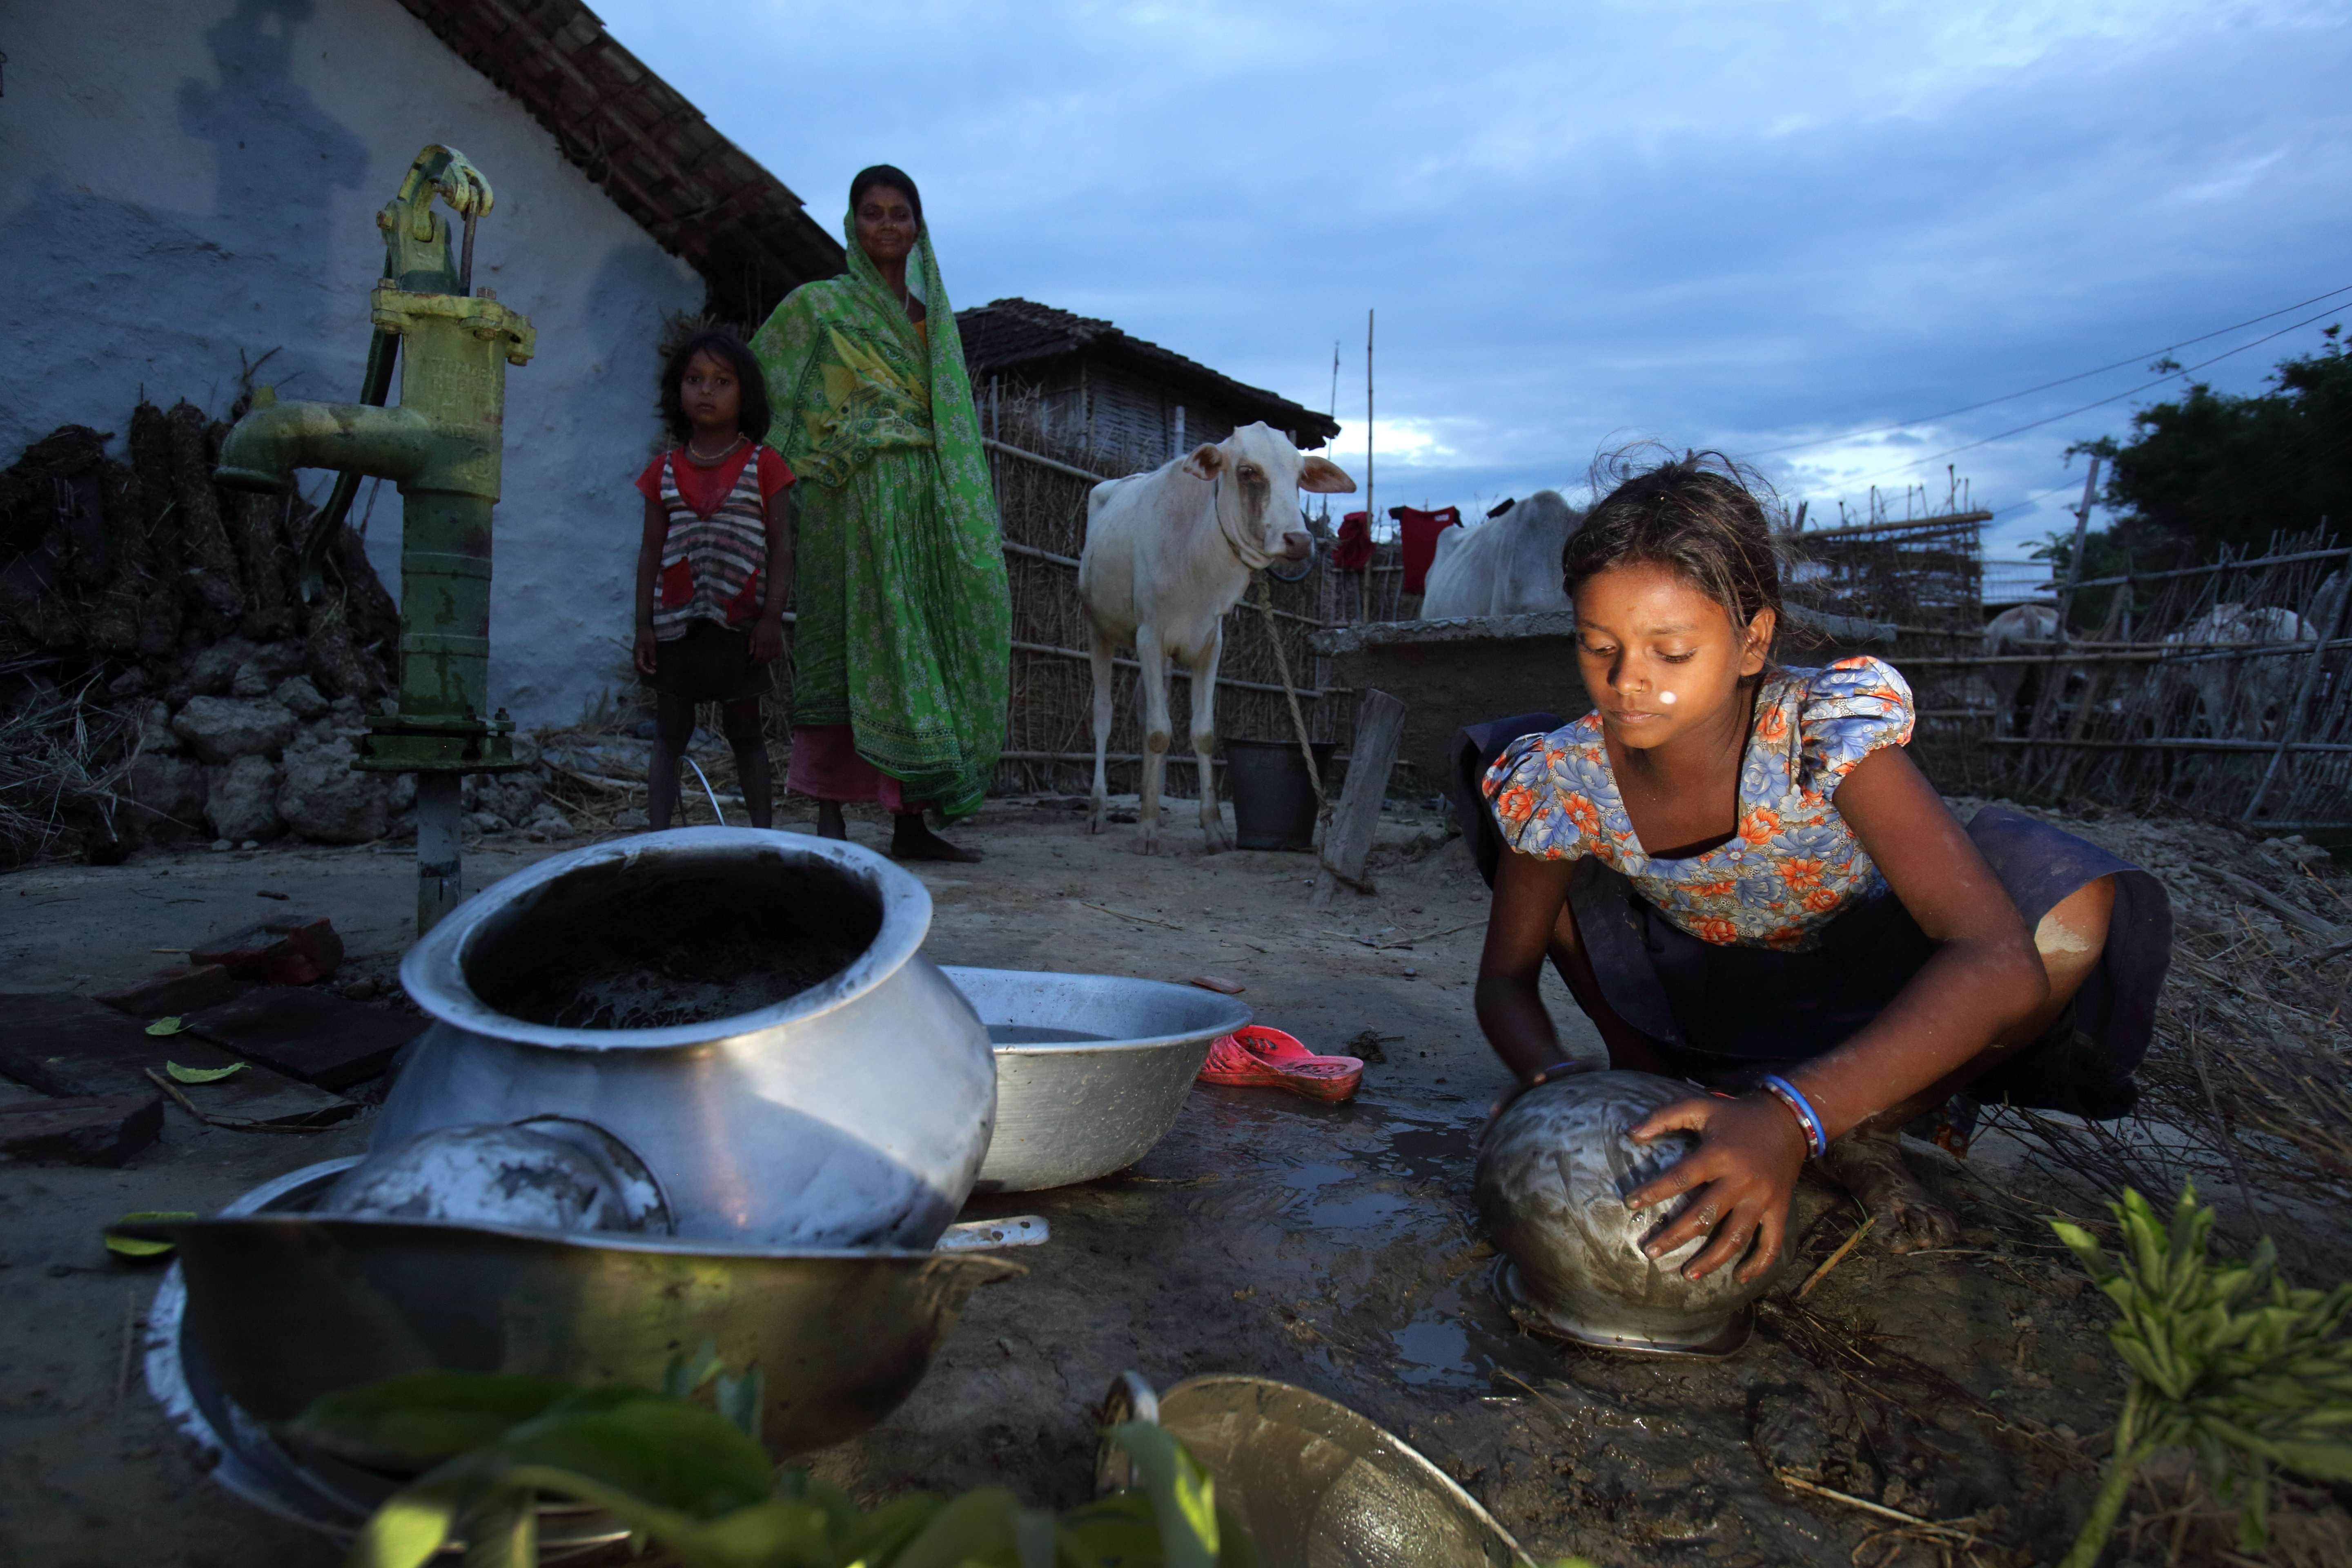 A young girl washes cooking utensils outside her home in Nepal. Photo by Jim Holmes for DFAT.